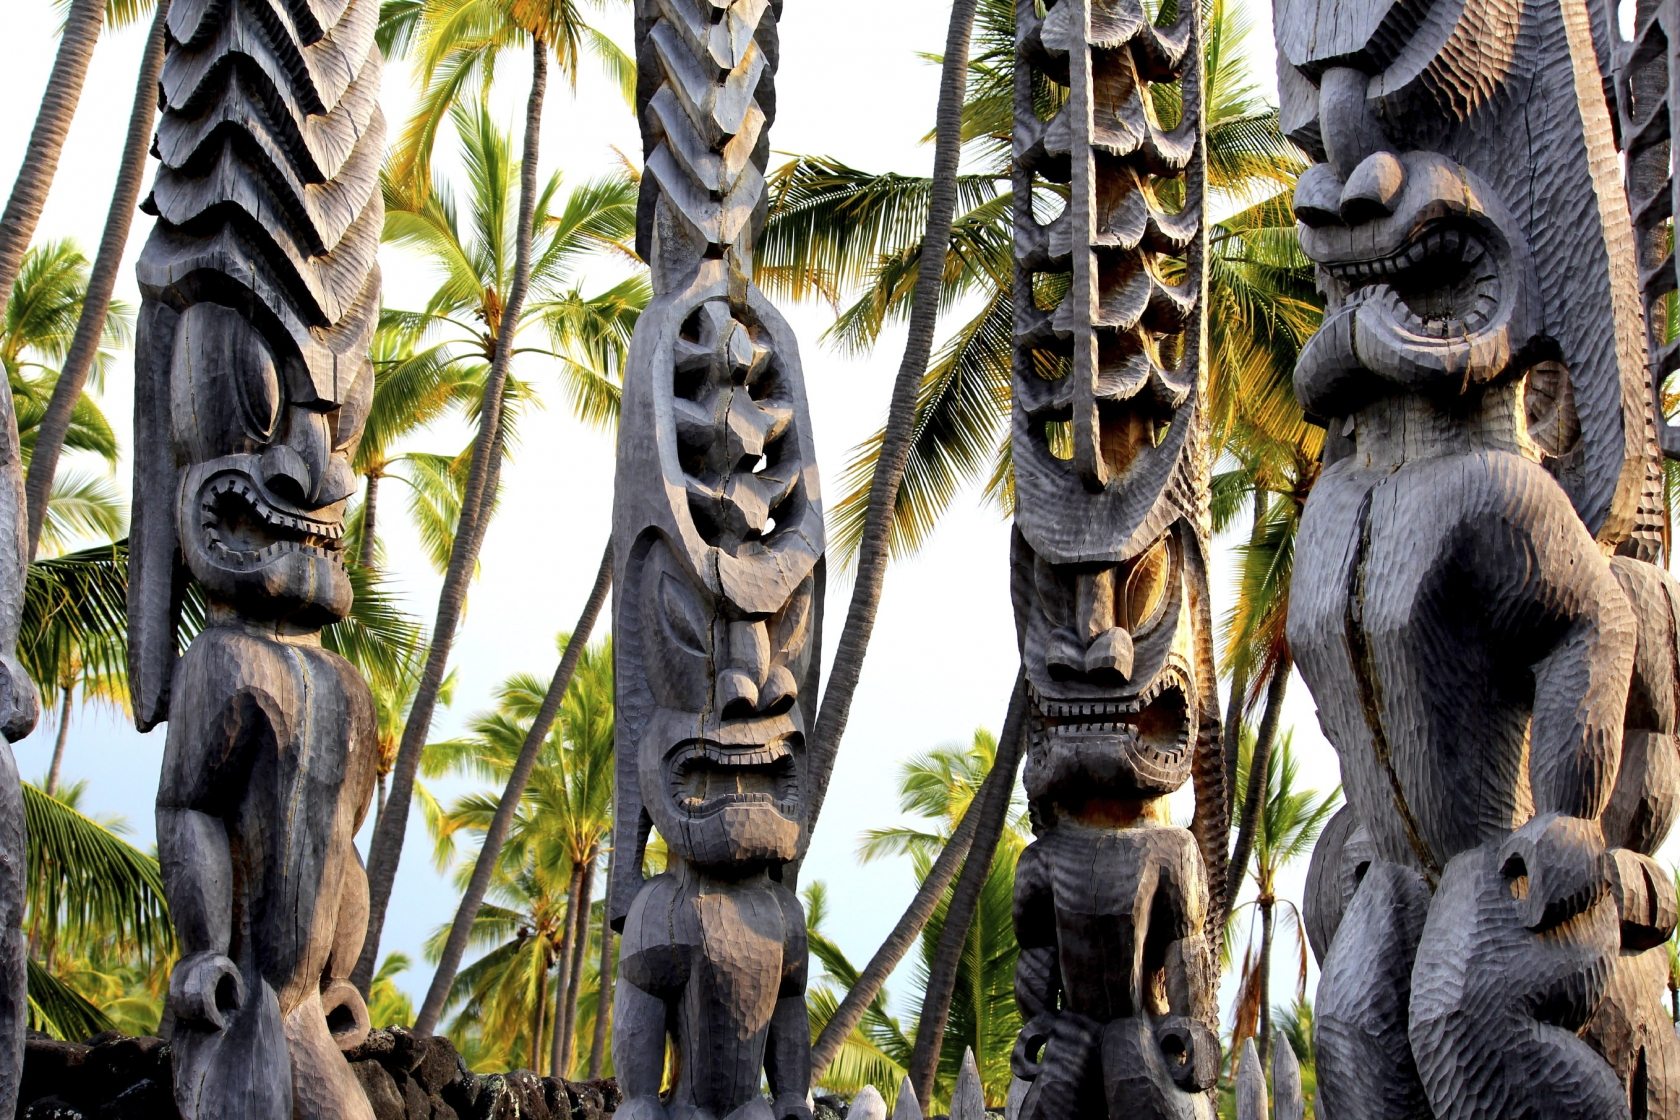 Four sun-lit wooden totems with carved faces at Pu'uhonua National Park